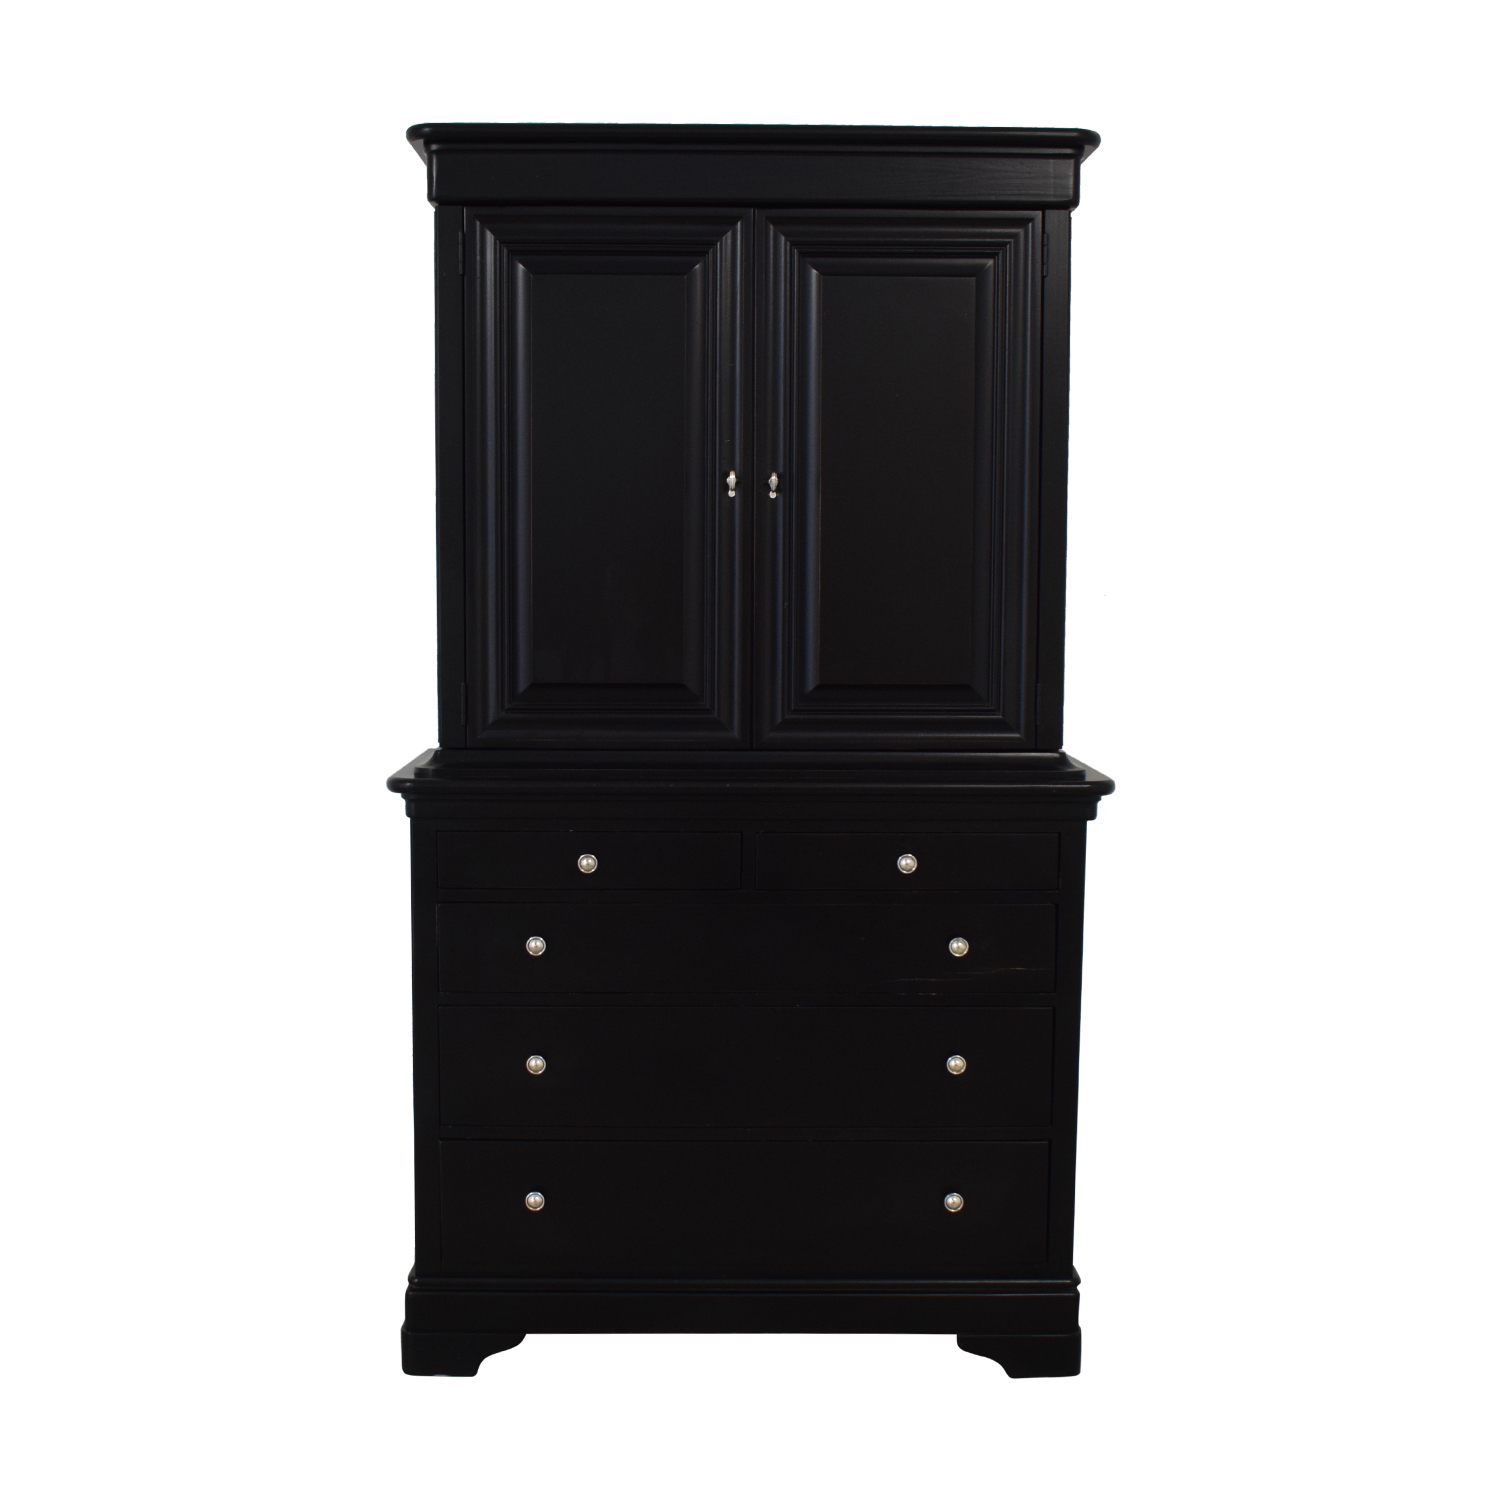 Stanley Furniture Stanley Furniture Armoire coupon